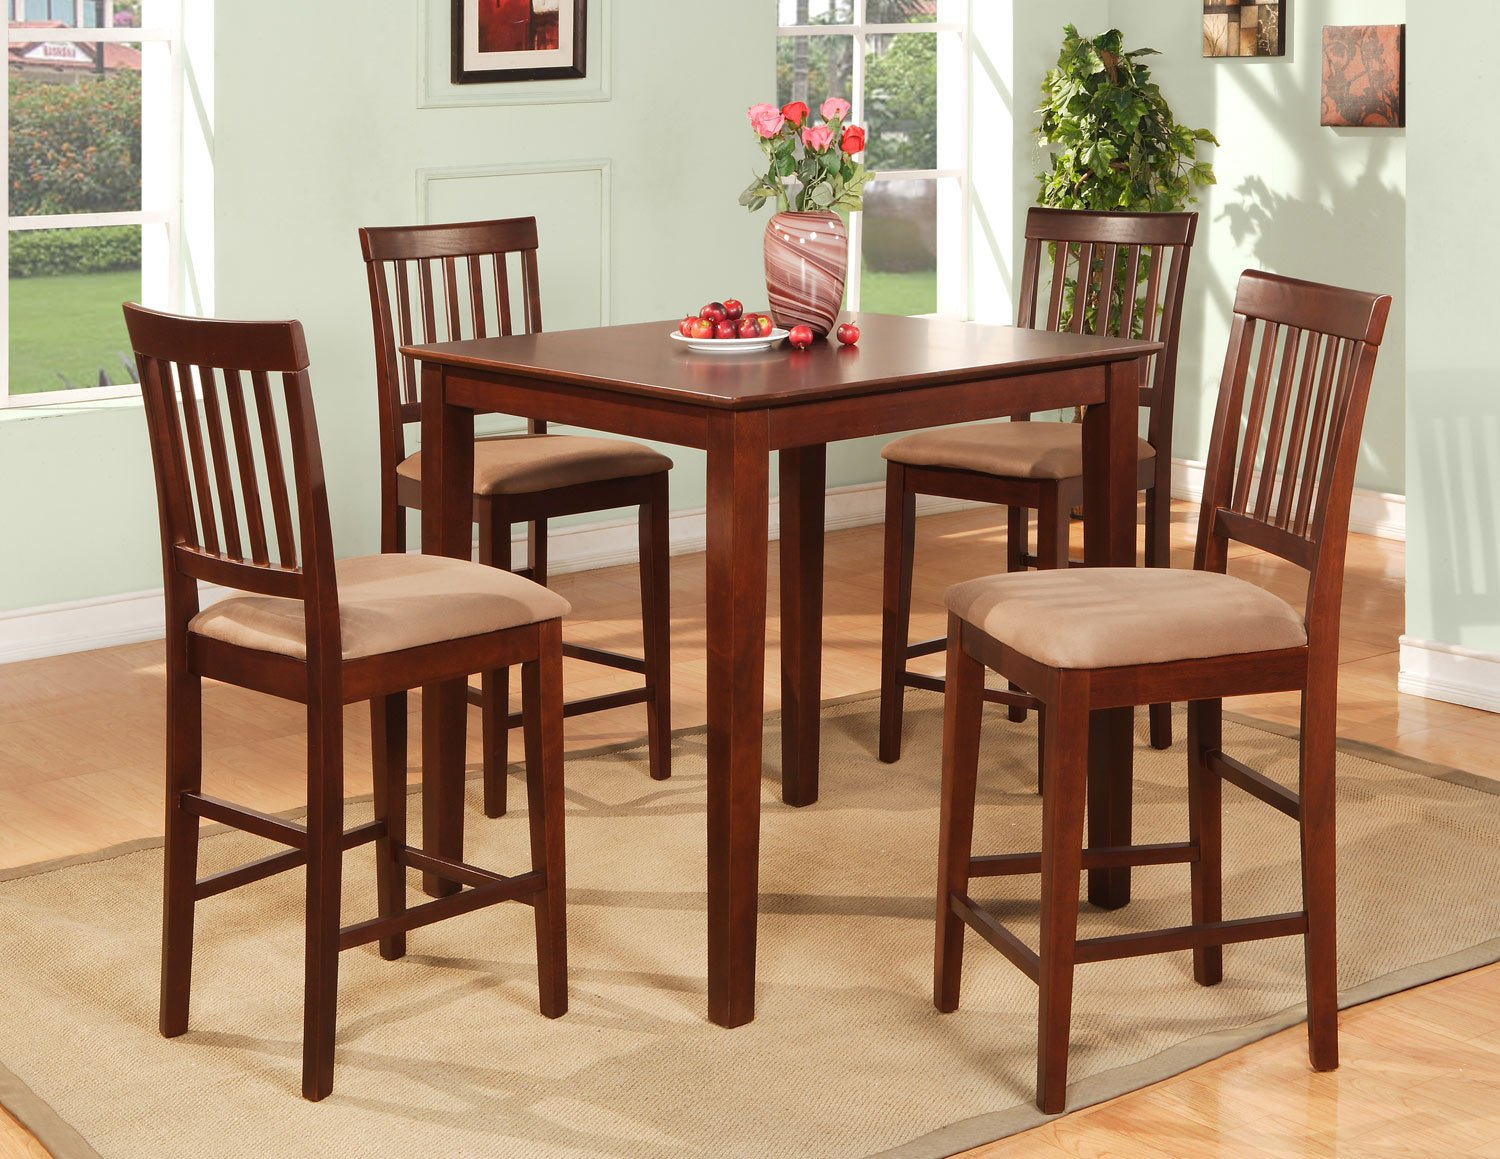 5-Piece Vernon Square Pub Table Set with 4 stools- in Mahogany Finish.  SKU: VN5-MAH